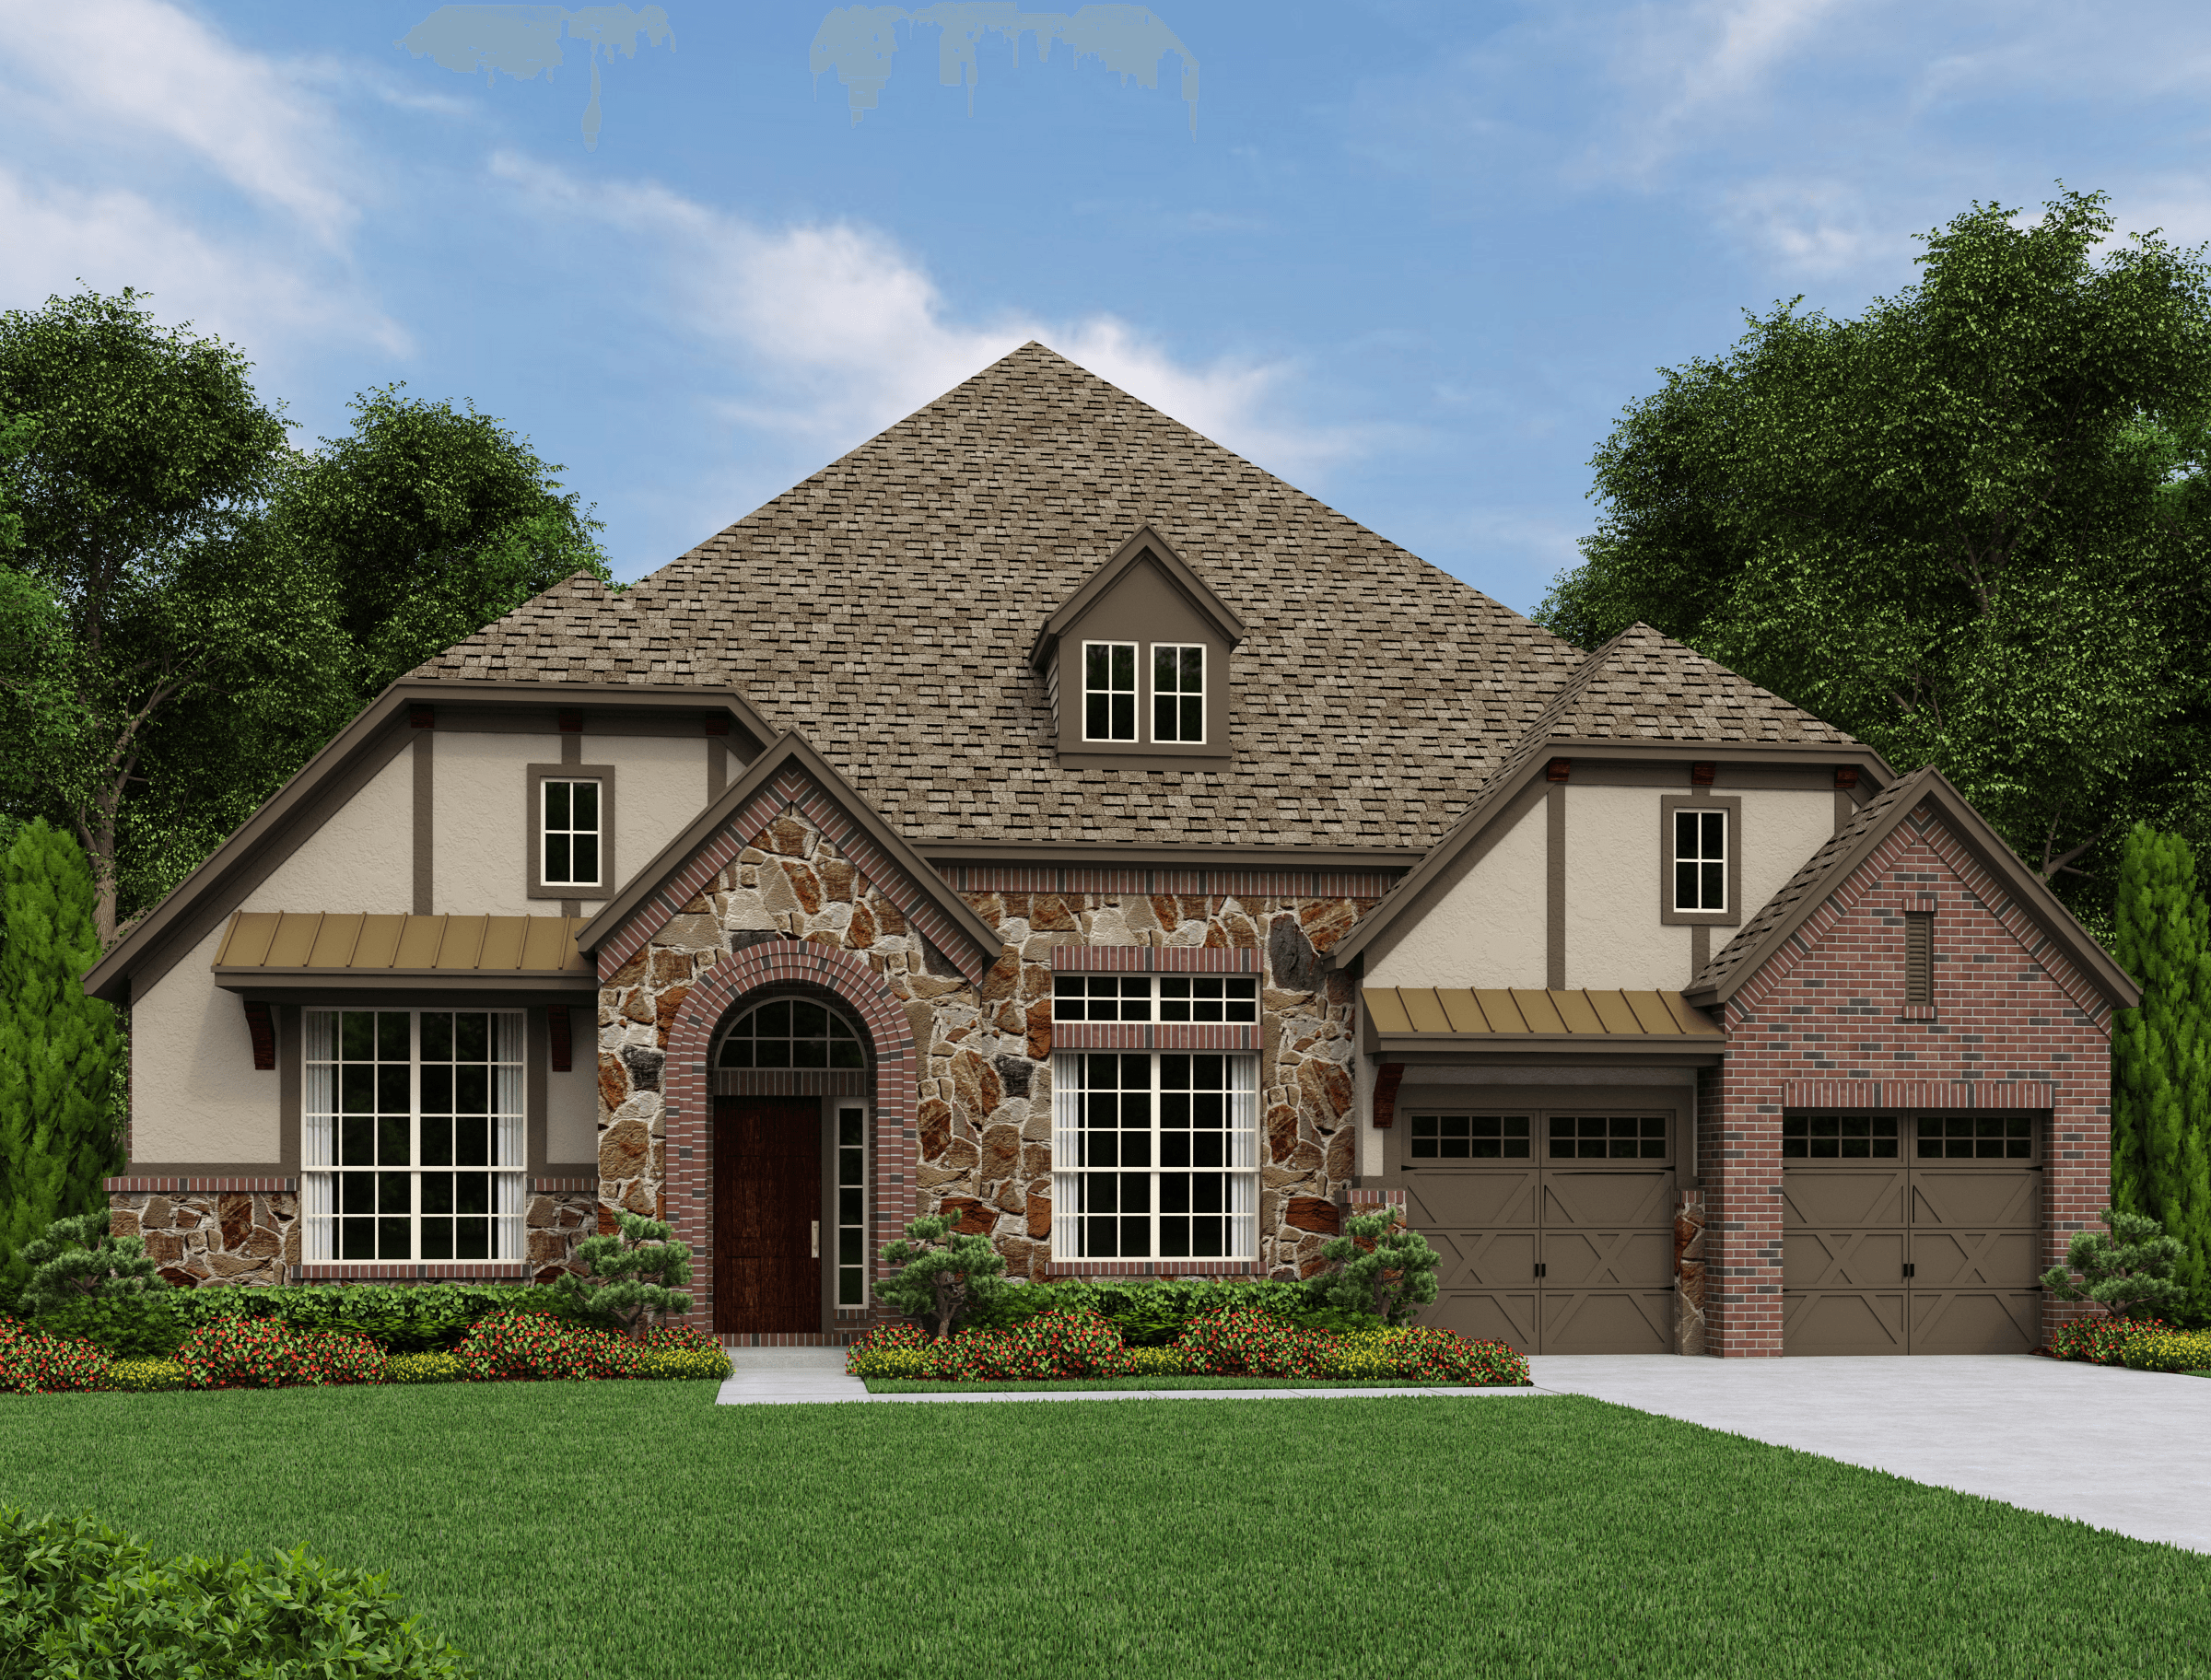 Ashton woods homes firethorne lorraine 1257928 katy tx for Firethorne builders